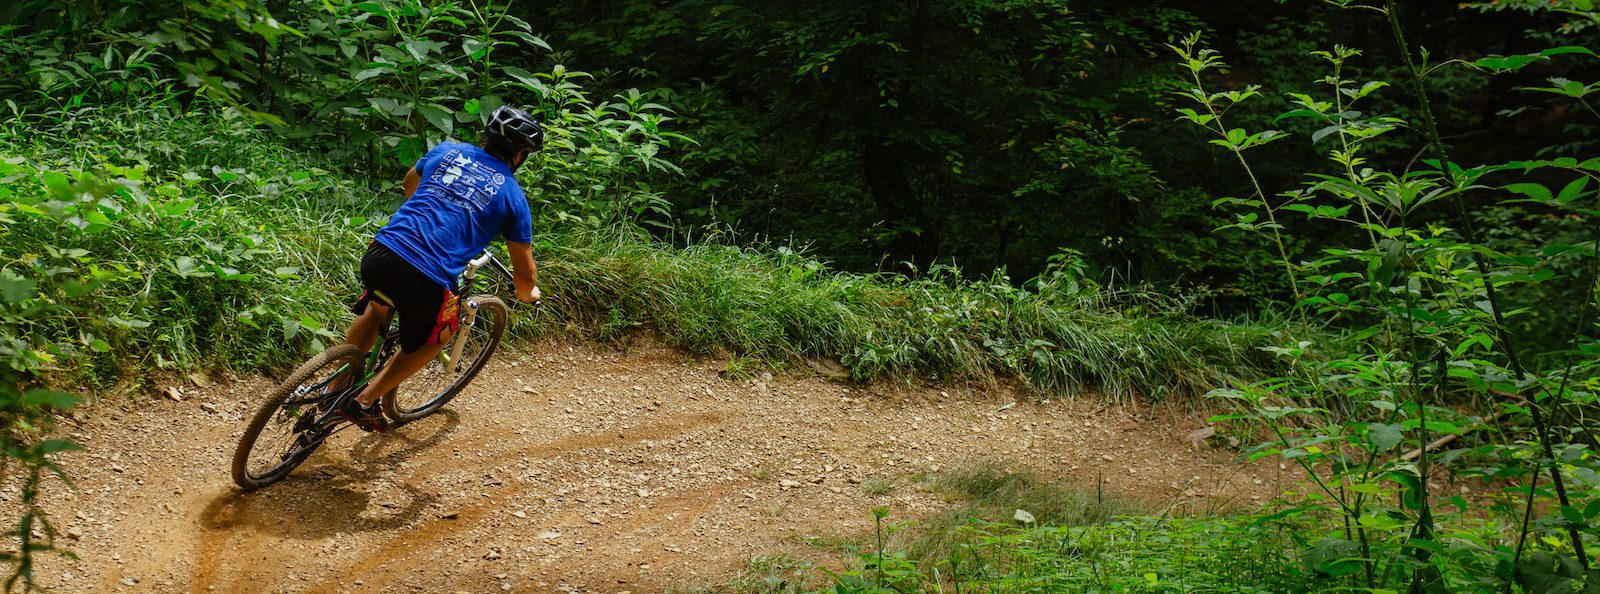 4 Reasons You Should Go Mountain Biking in Gatlinburg for the First Time with CLIMB Works